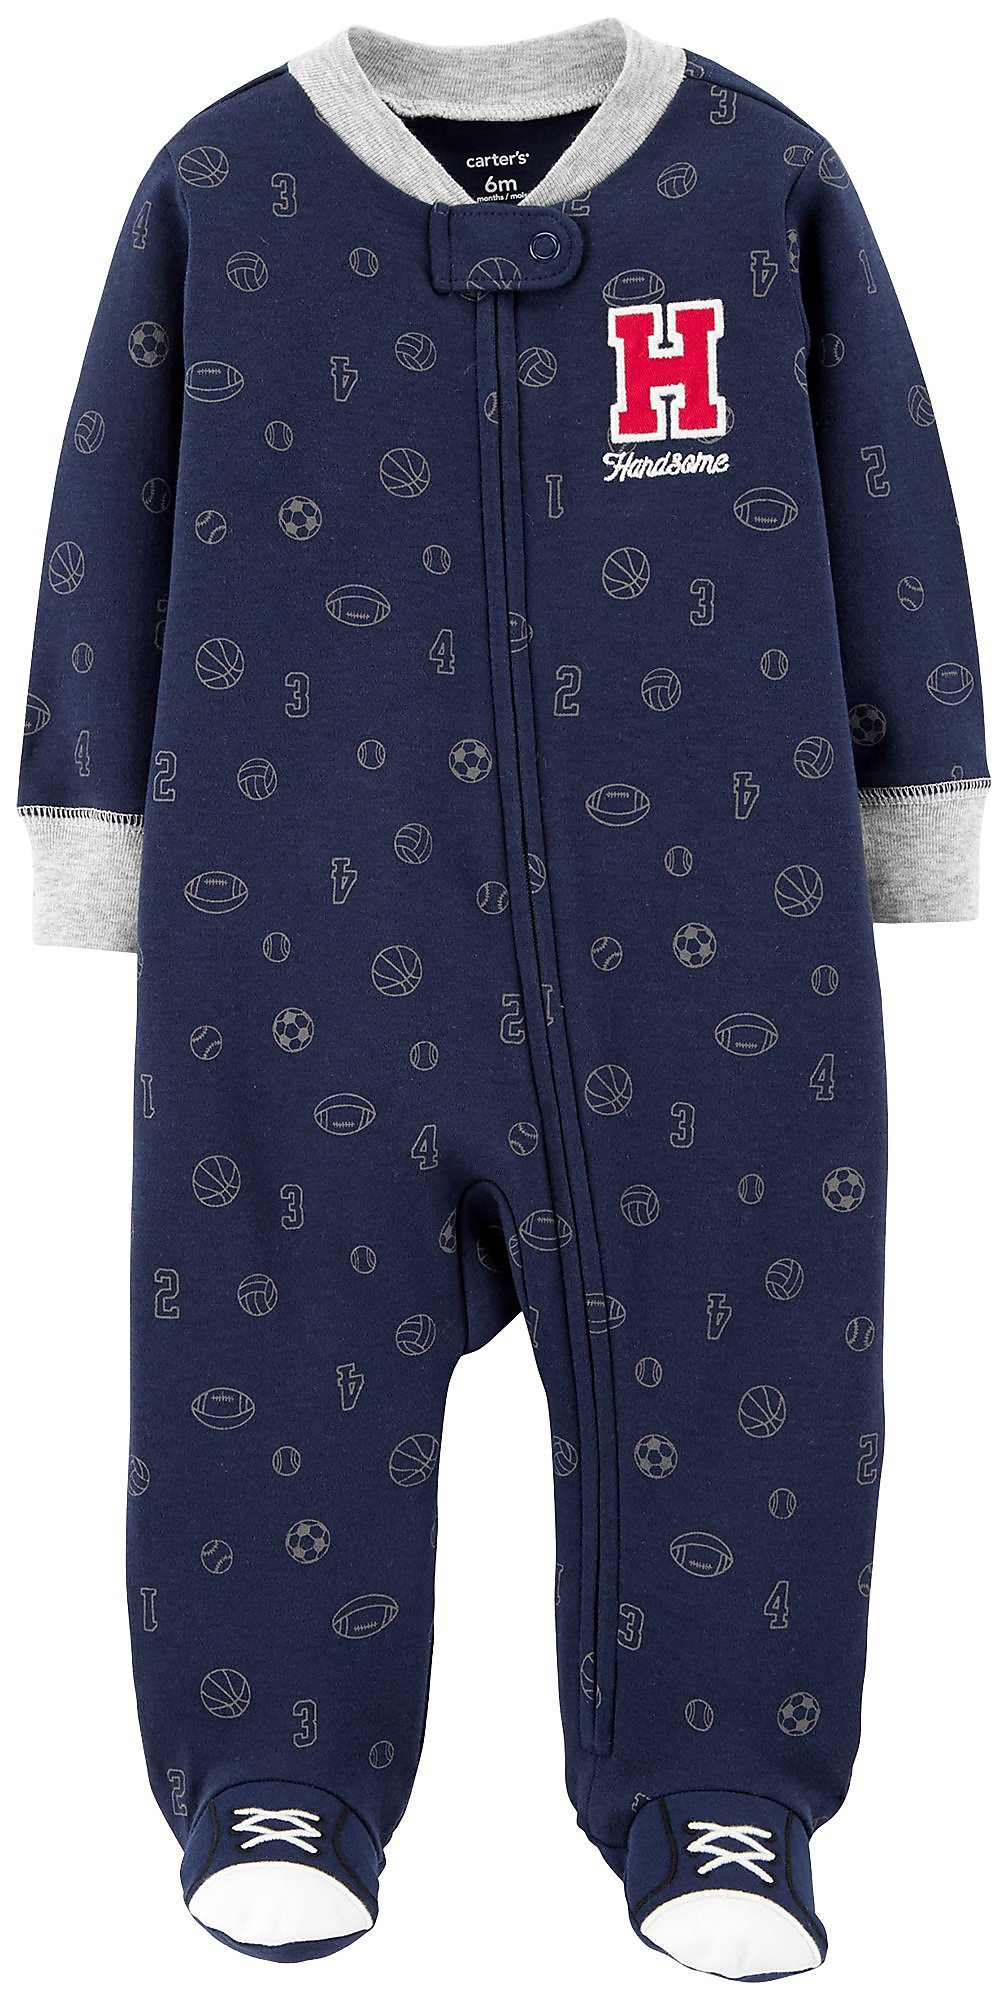 Carters Baby Boys Handsome Sleep Play Newborn Navy Blue Grey Red